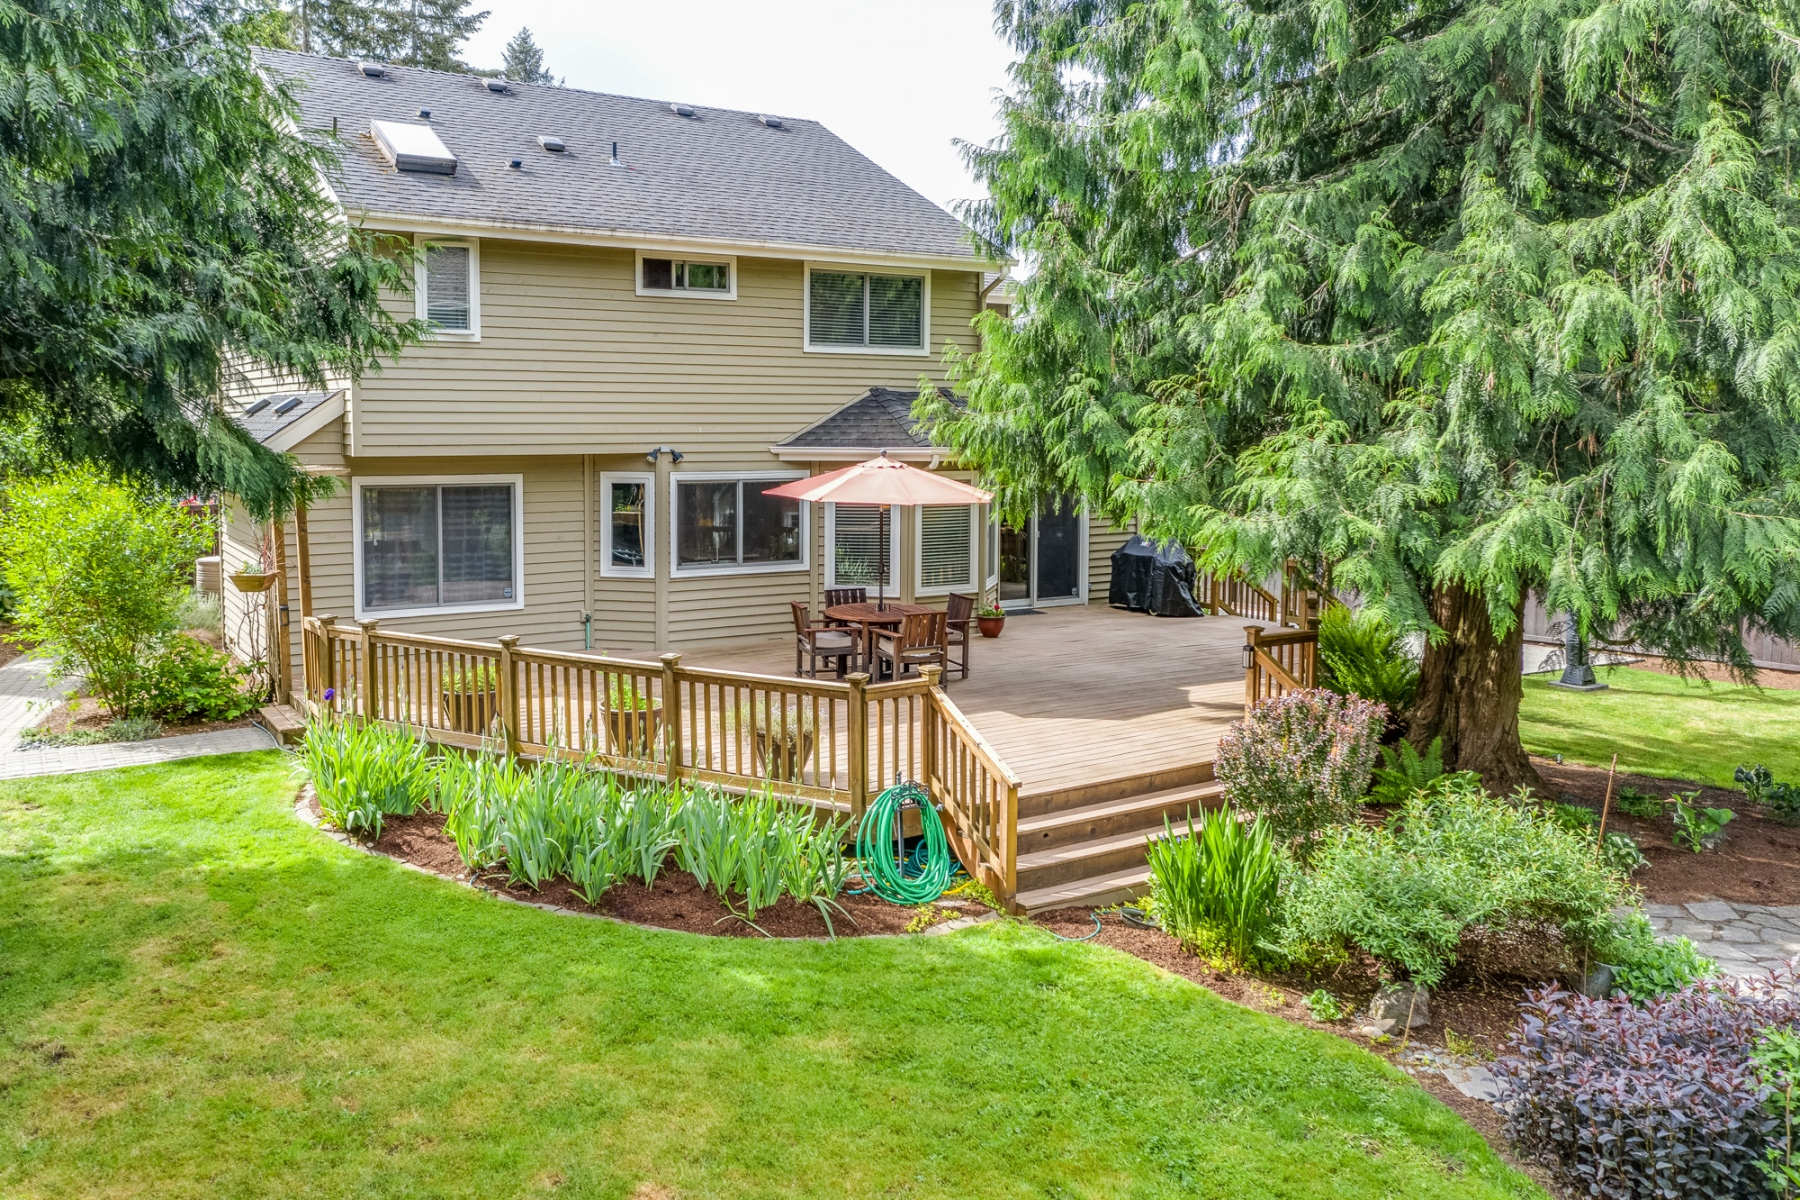 14153-176th-Ave-NE-Redmond-30